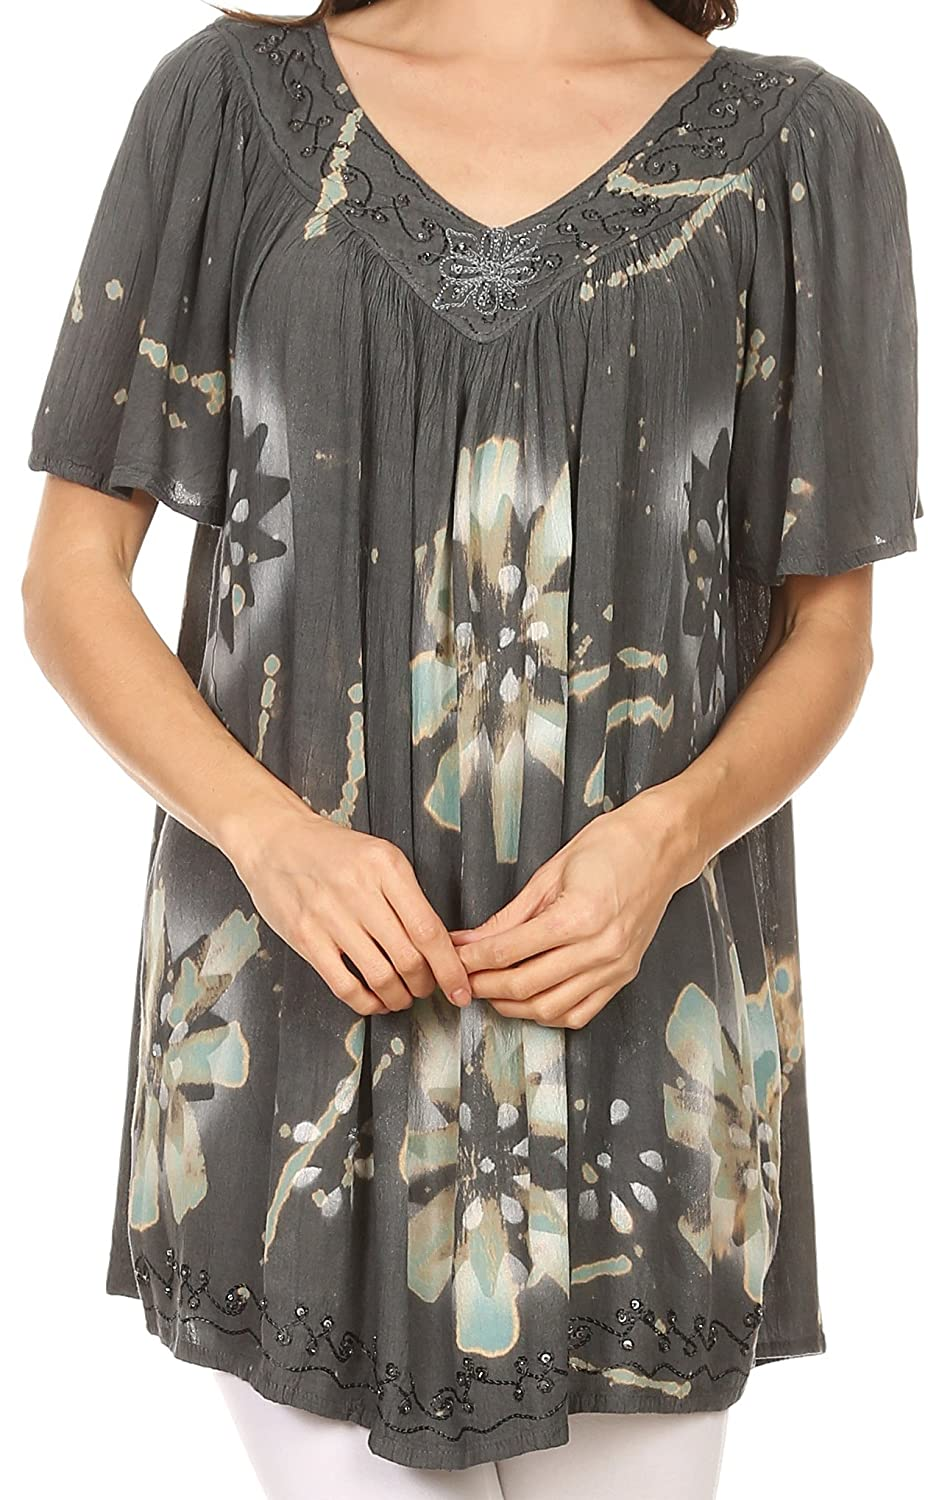 1eda5341a9d1 Imported One Size Regular: [(Fits Approximate Dress Size: US 0-1X, EU  34-50, UK 6-22) Max bust size: 47 inches (119.3cm), Length 30 inches  (76.2cm)].